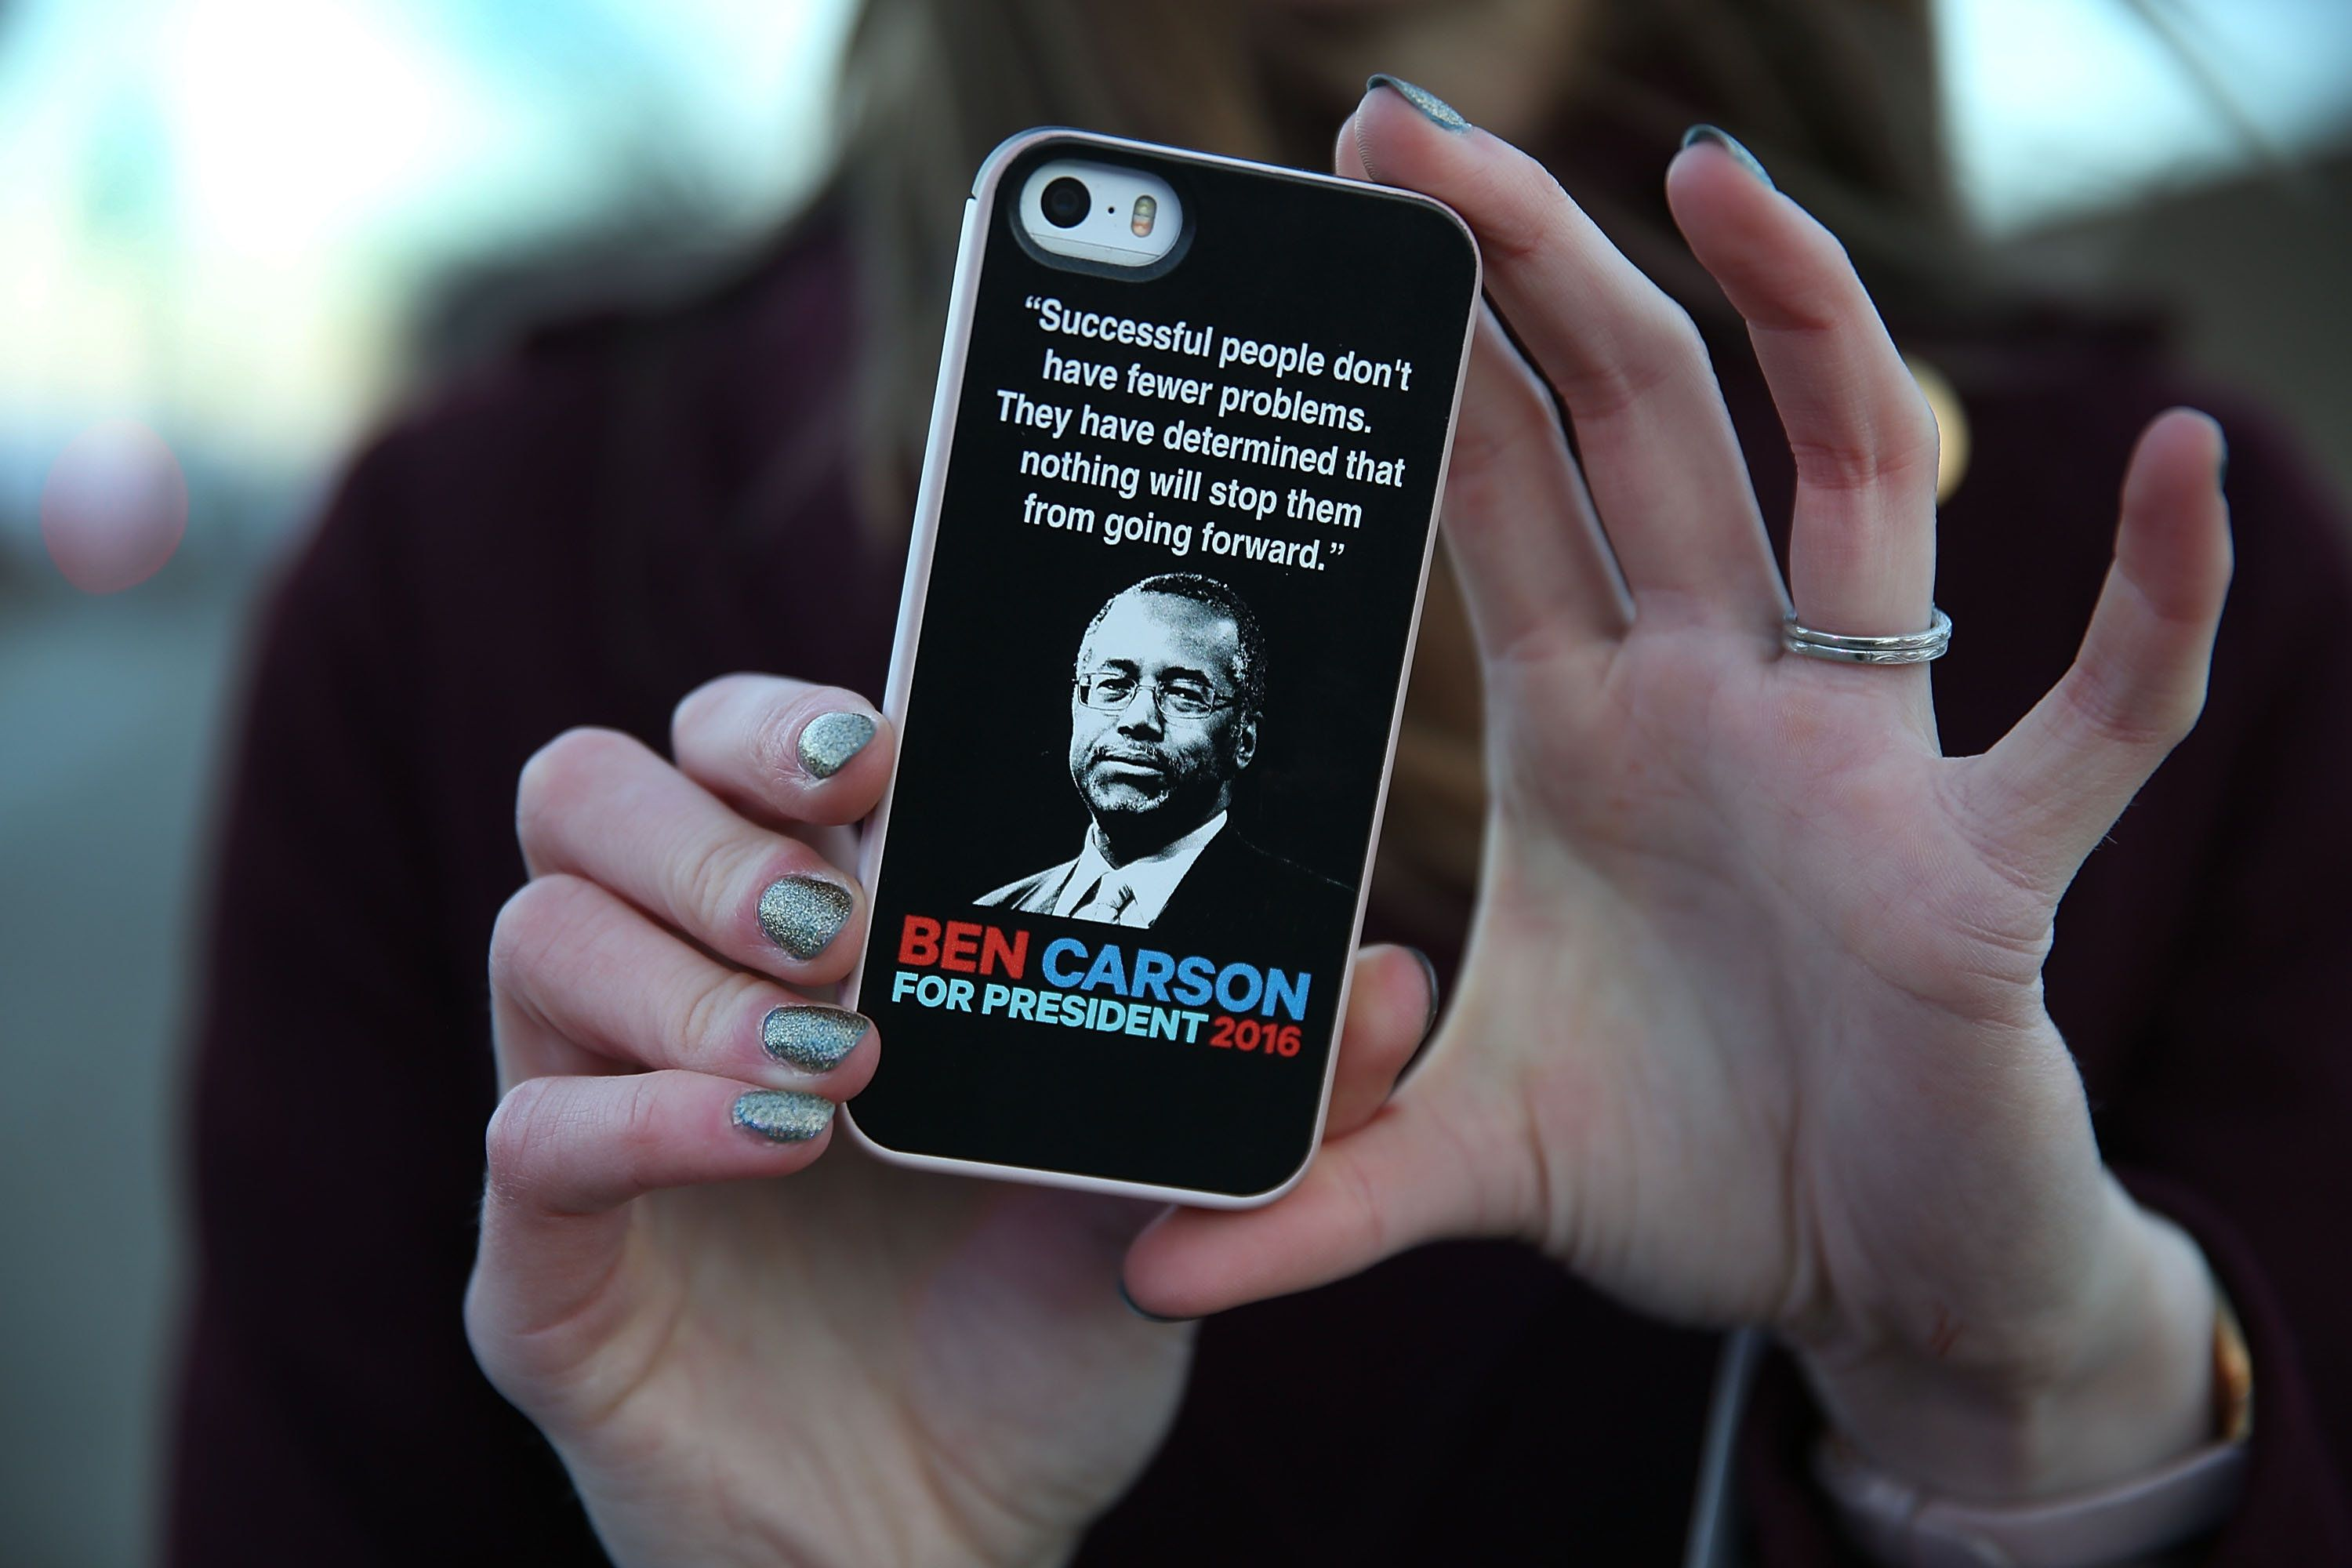 DES MOINES, IA - JANUARY 28: Megan Dieken shows her support for Republican Presidential candidate Ben Carson with a sticker on her phone outside the Iowa Events Center where the debate is taking place on January 28, 2016 in Des Moines, Iowa. The Democratic and Republican Iowa Caucuses, the first step in nominating a presidential candidate from each party, will take place on February 1. (Photo by Joe Raedle/Getty Images)